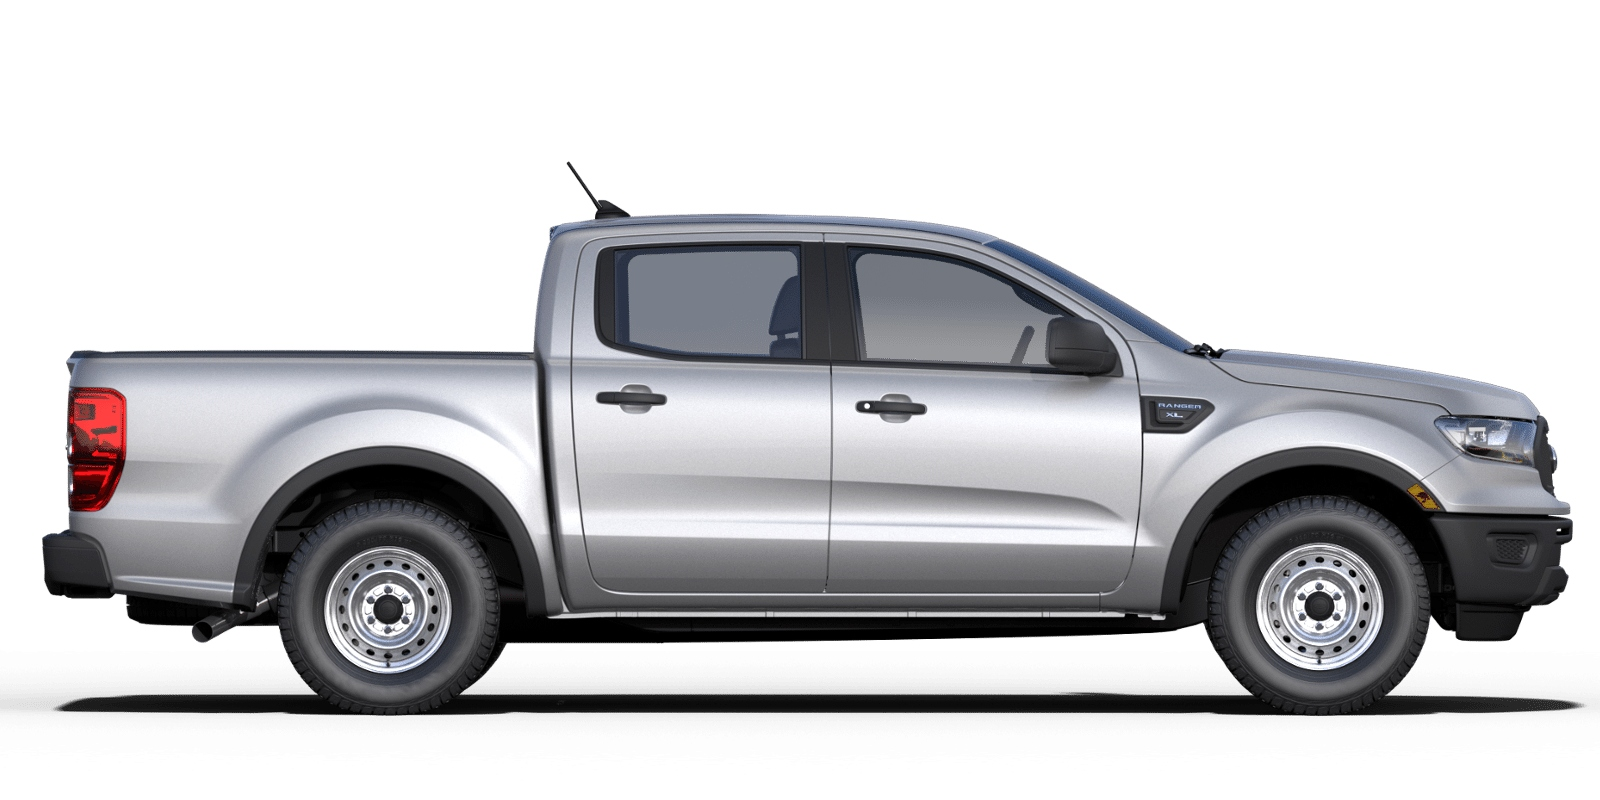 Exterior view of a silver 2019 Ford Ranger SuperCrew®